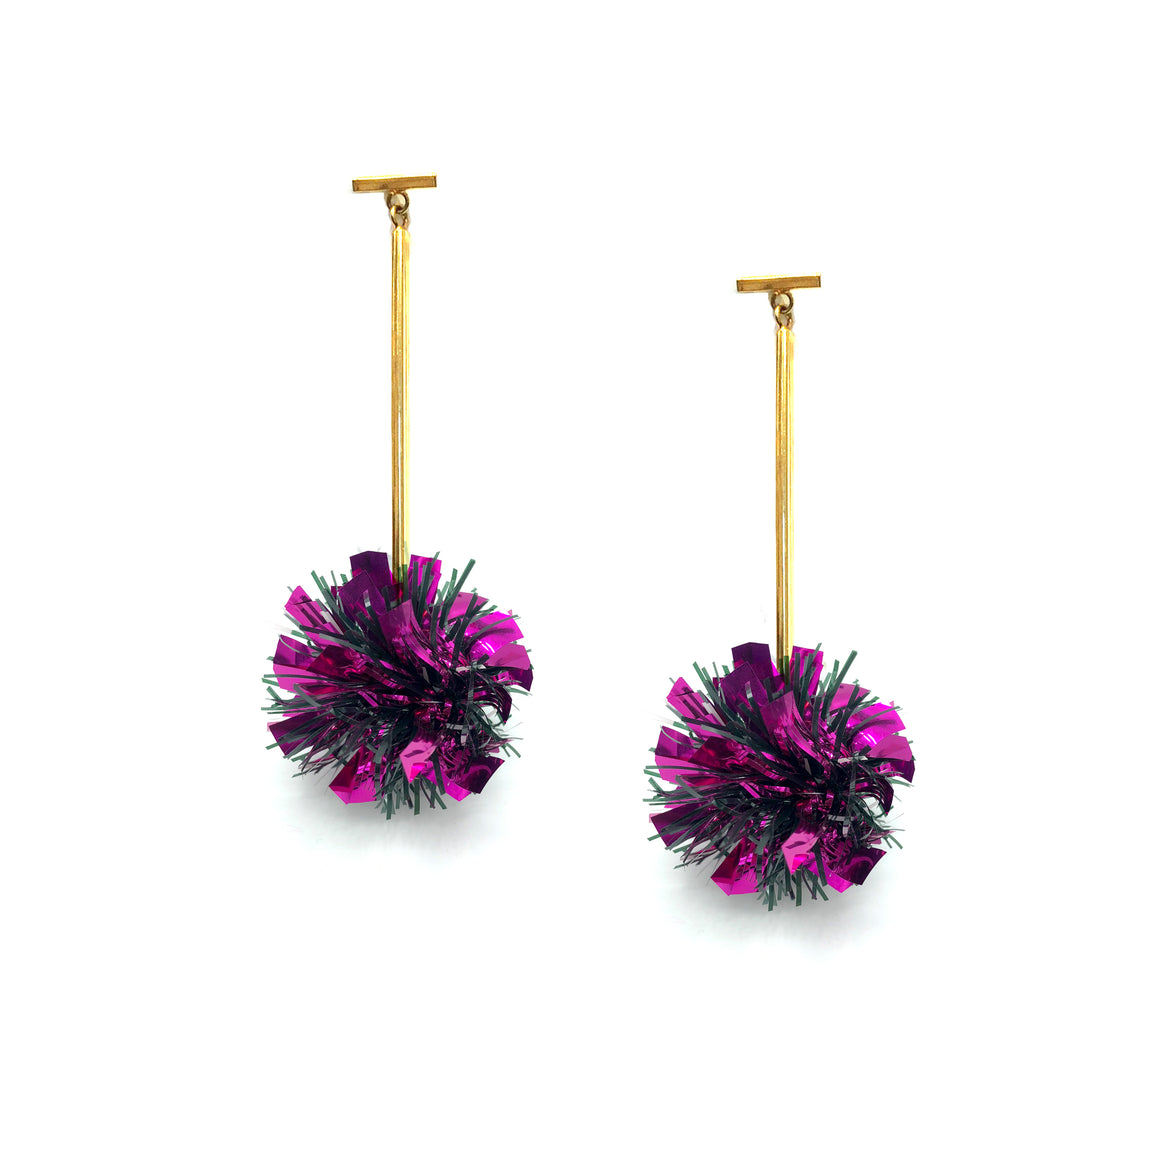 Fuchsia Lurex Pom Pom T Bar Earrings